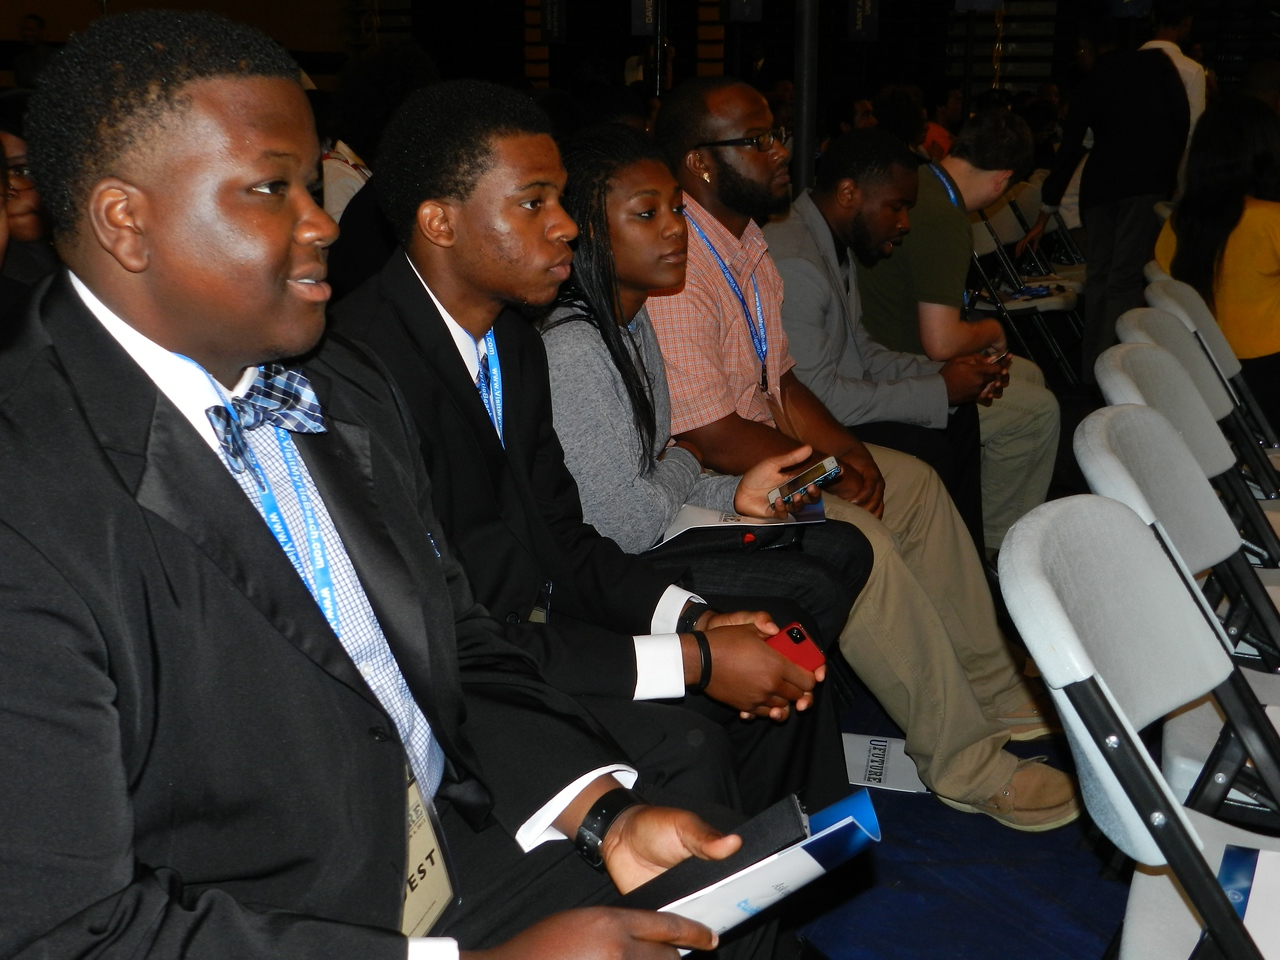 GWU students attend the Democratic National Convention in Charlotte, NC.